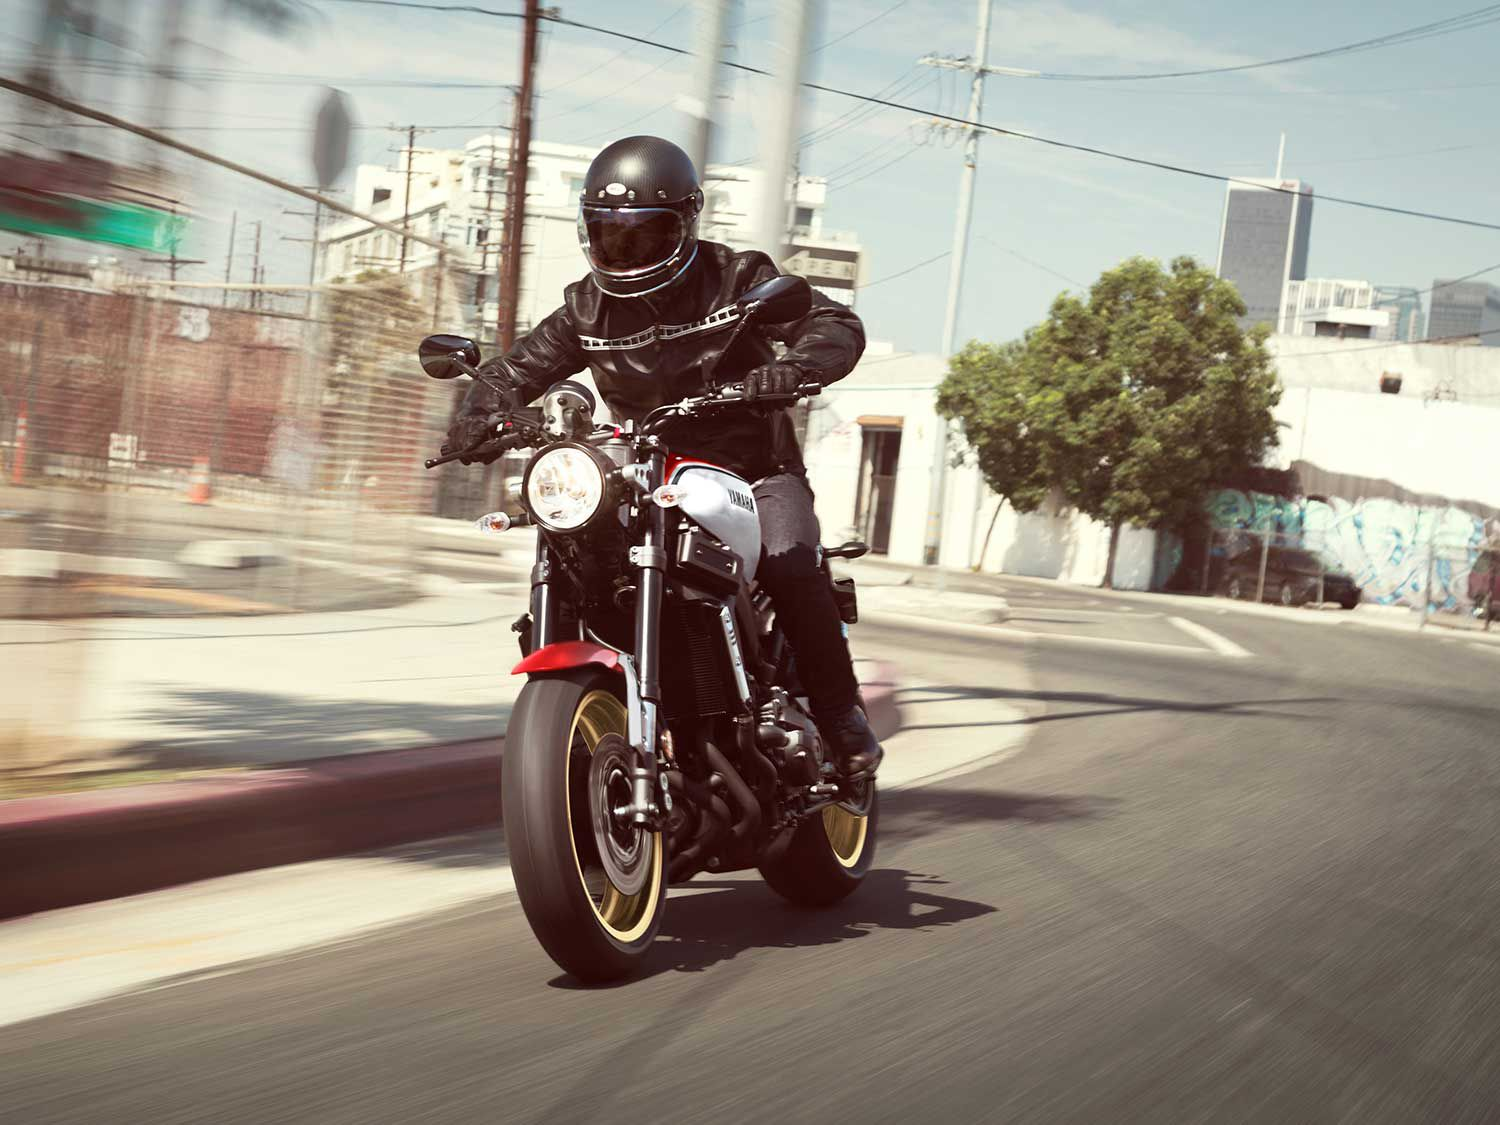 A pair of 298mm brake discs and four-piston calipers provide stopping power up front. ABS is standard on both XSR900 and XSR700 models.